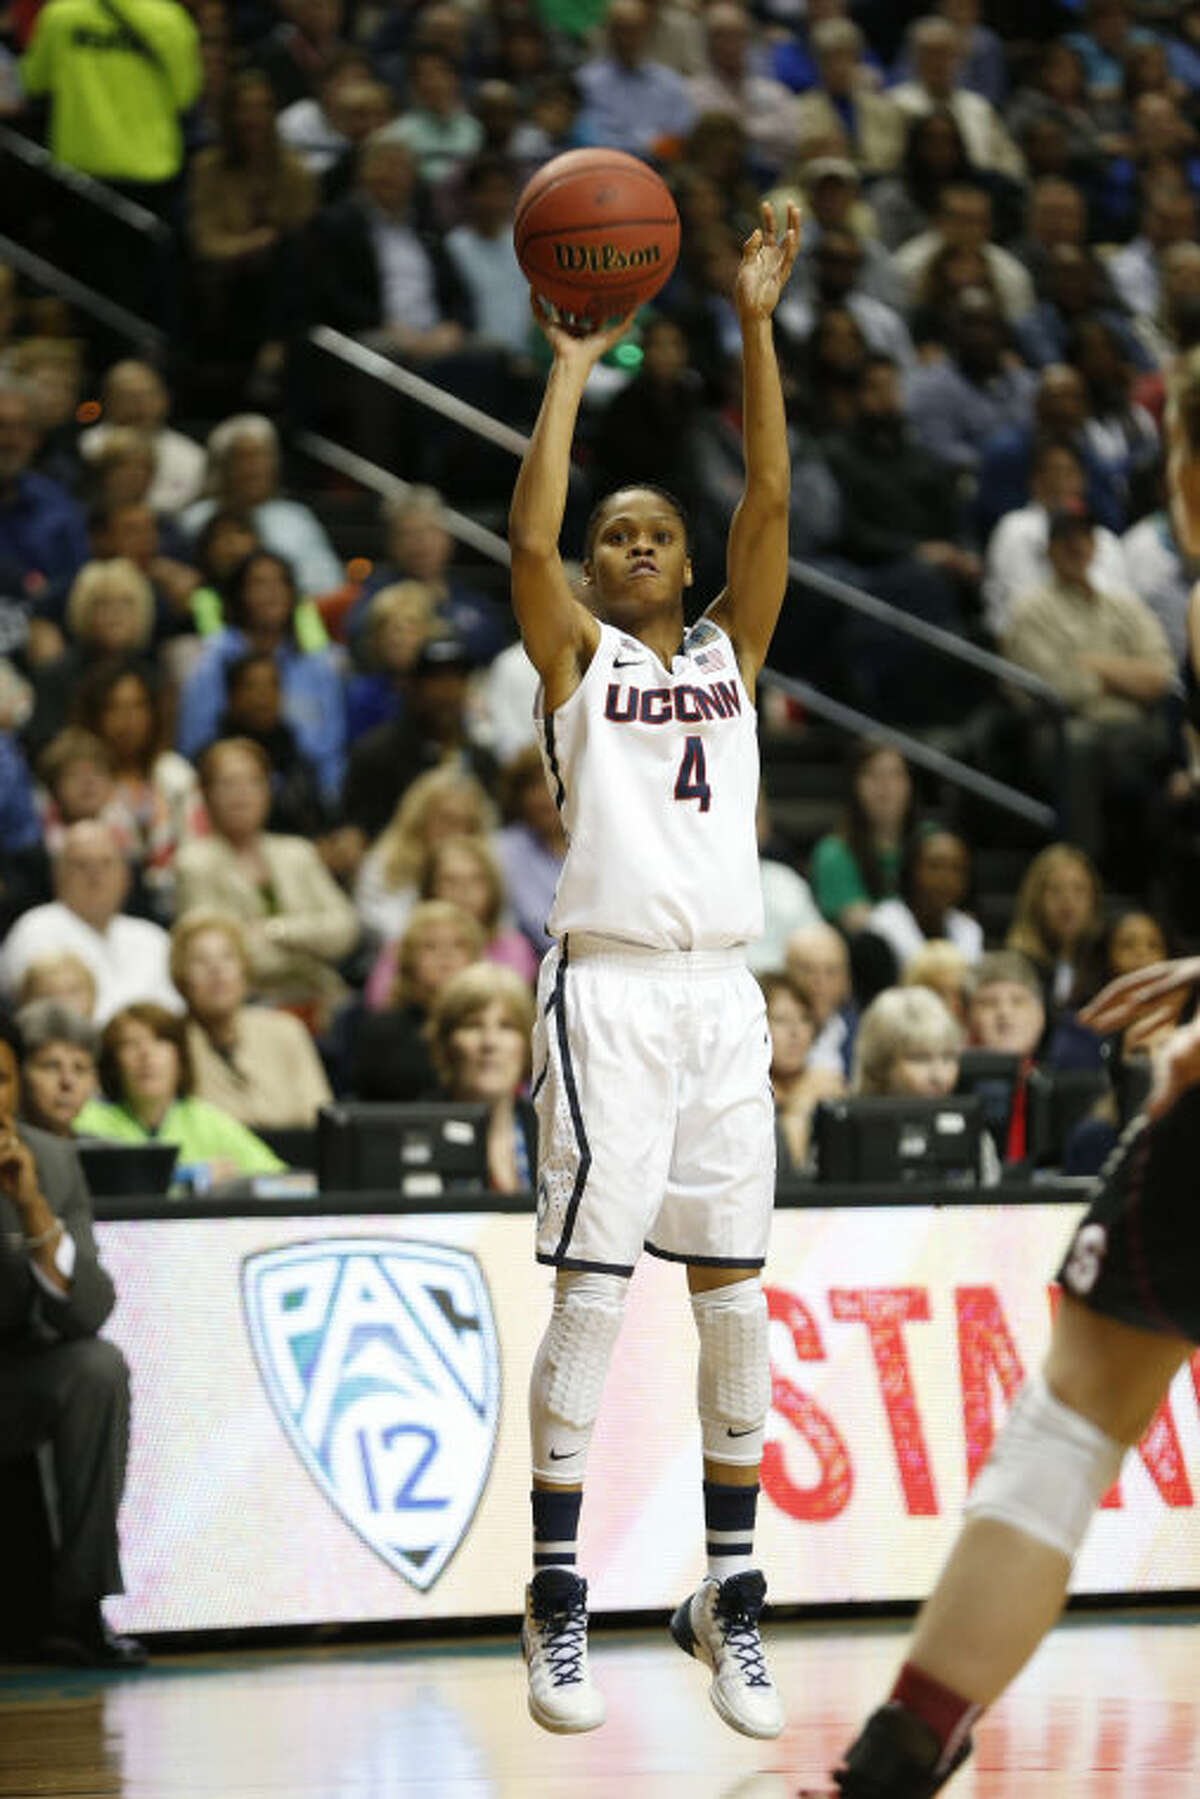 Connecticut guard Moriah Jefferson (4) shoots against Stanford during the first half of the semifinal game in the Final Four of the NCAA women's college basketball tournament, Sunday, April 6, 2014, in Nashville, Tenn. (AP Photo/Mark Humphrey)